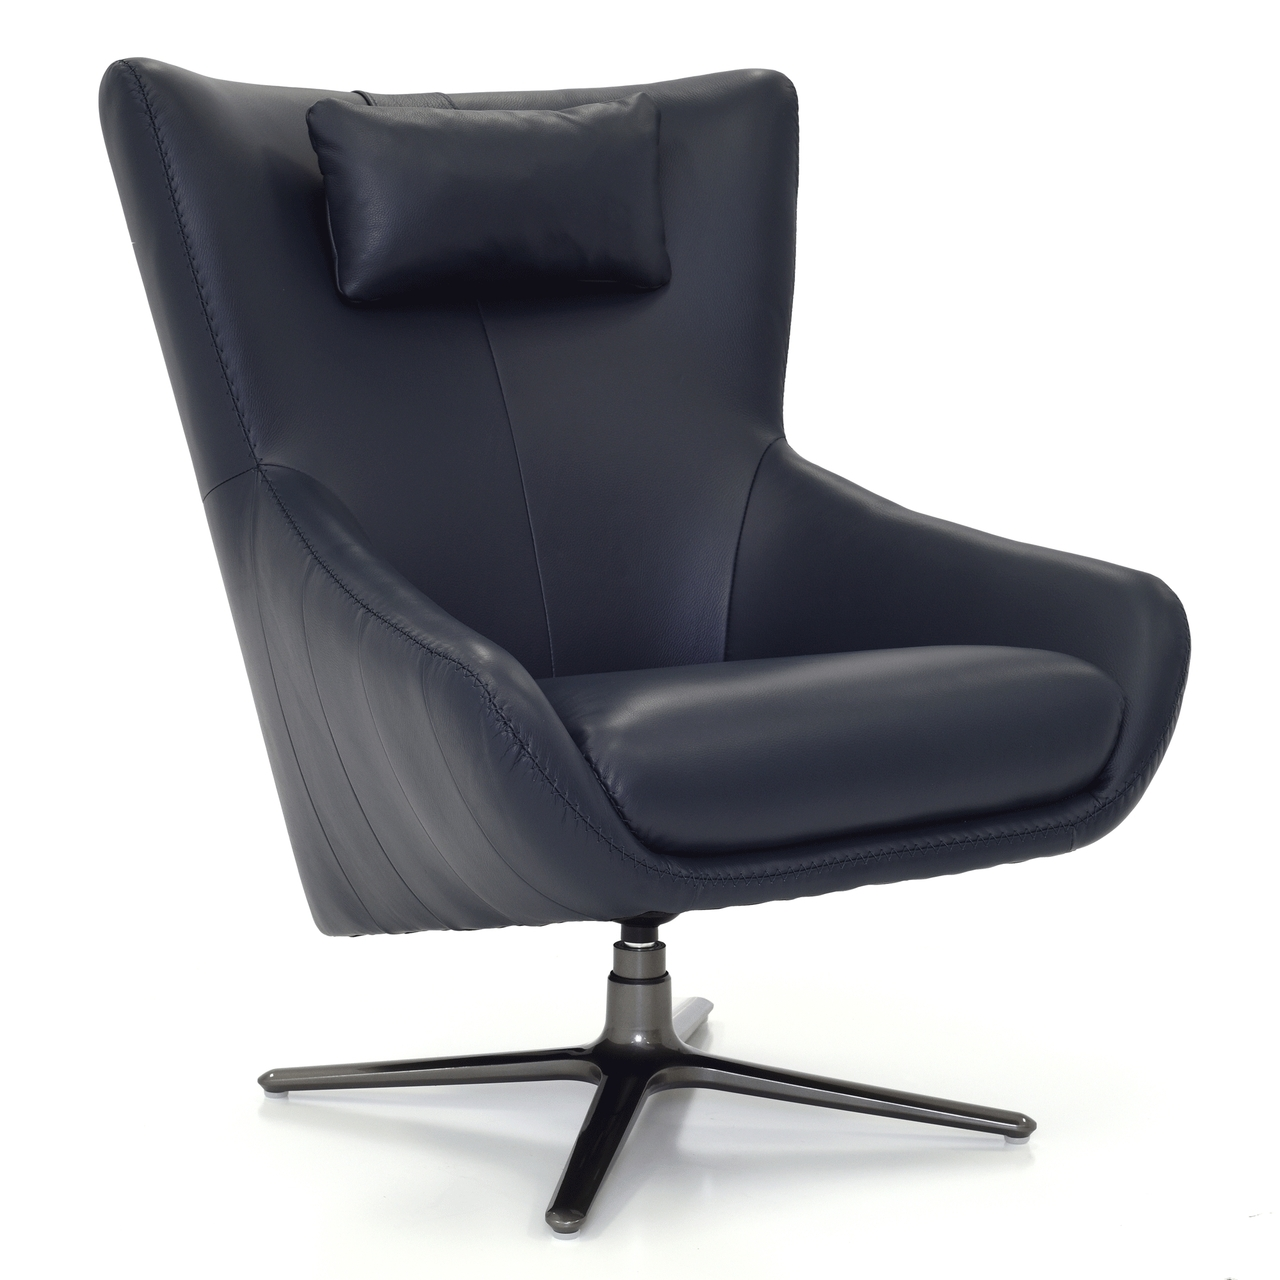 Prime Modern Furniture Contemporary Furniture Cantoni Pdpeps Interior Chair Design Pdpepsorg